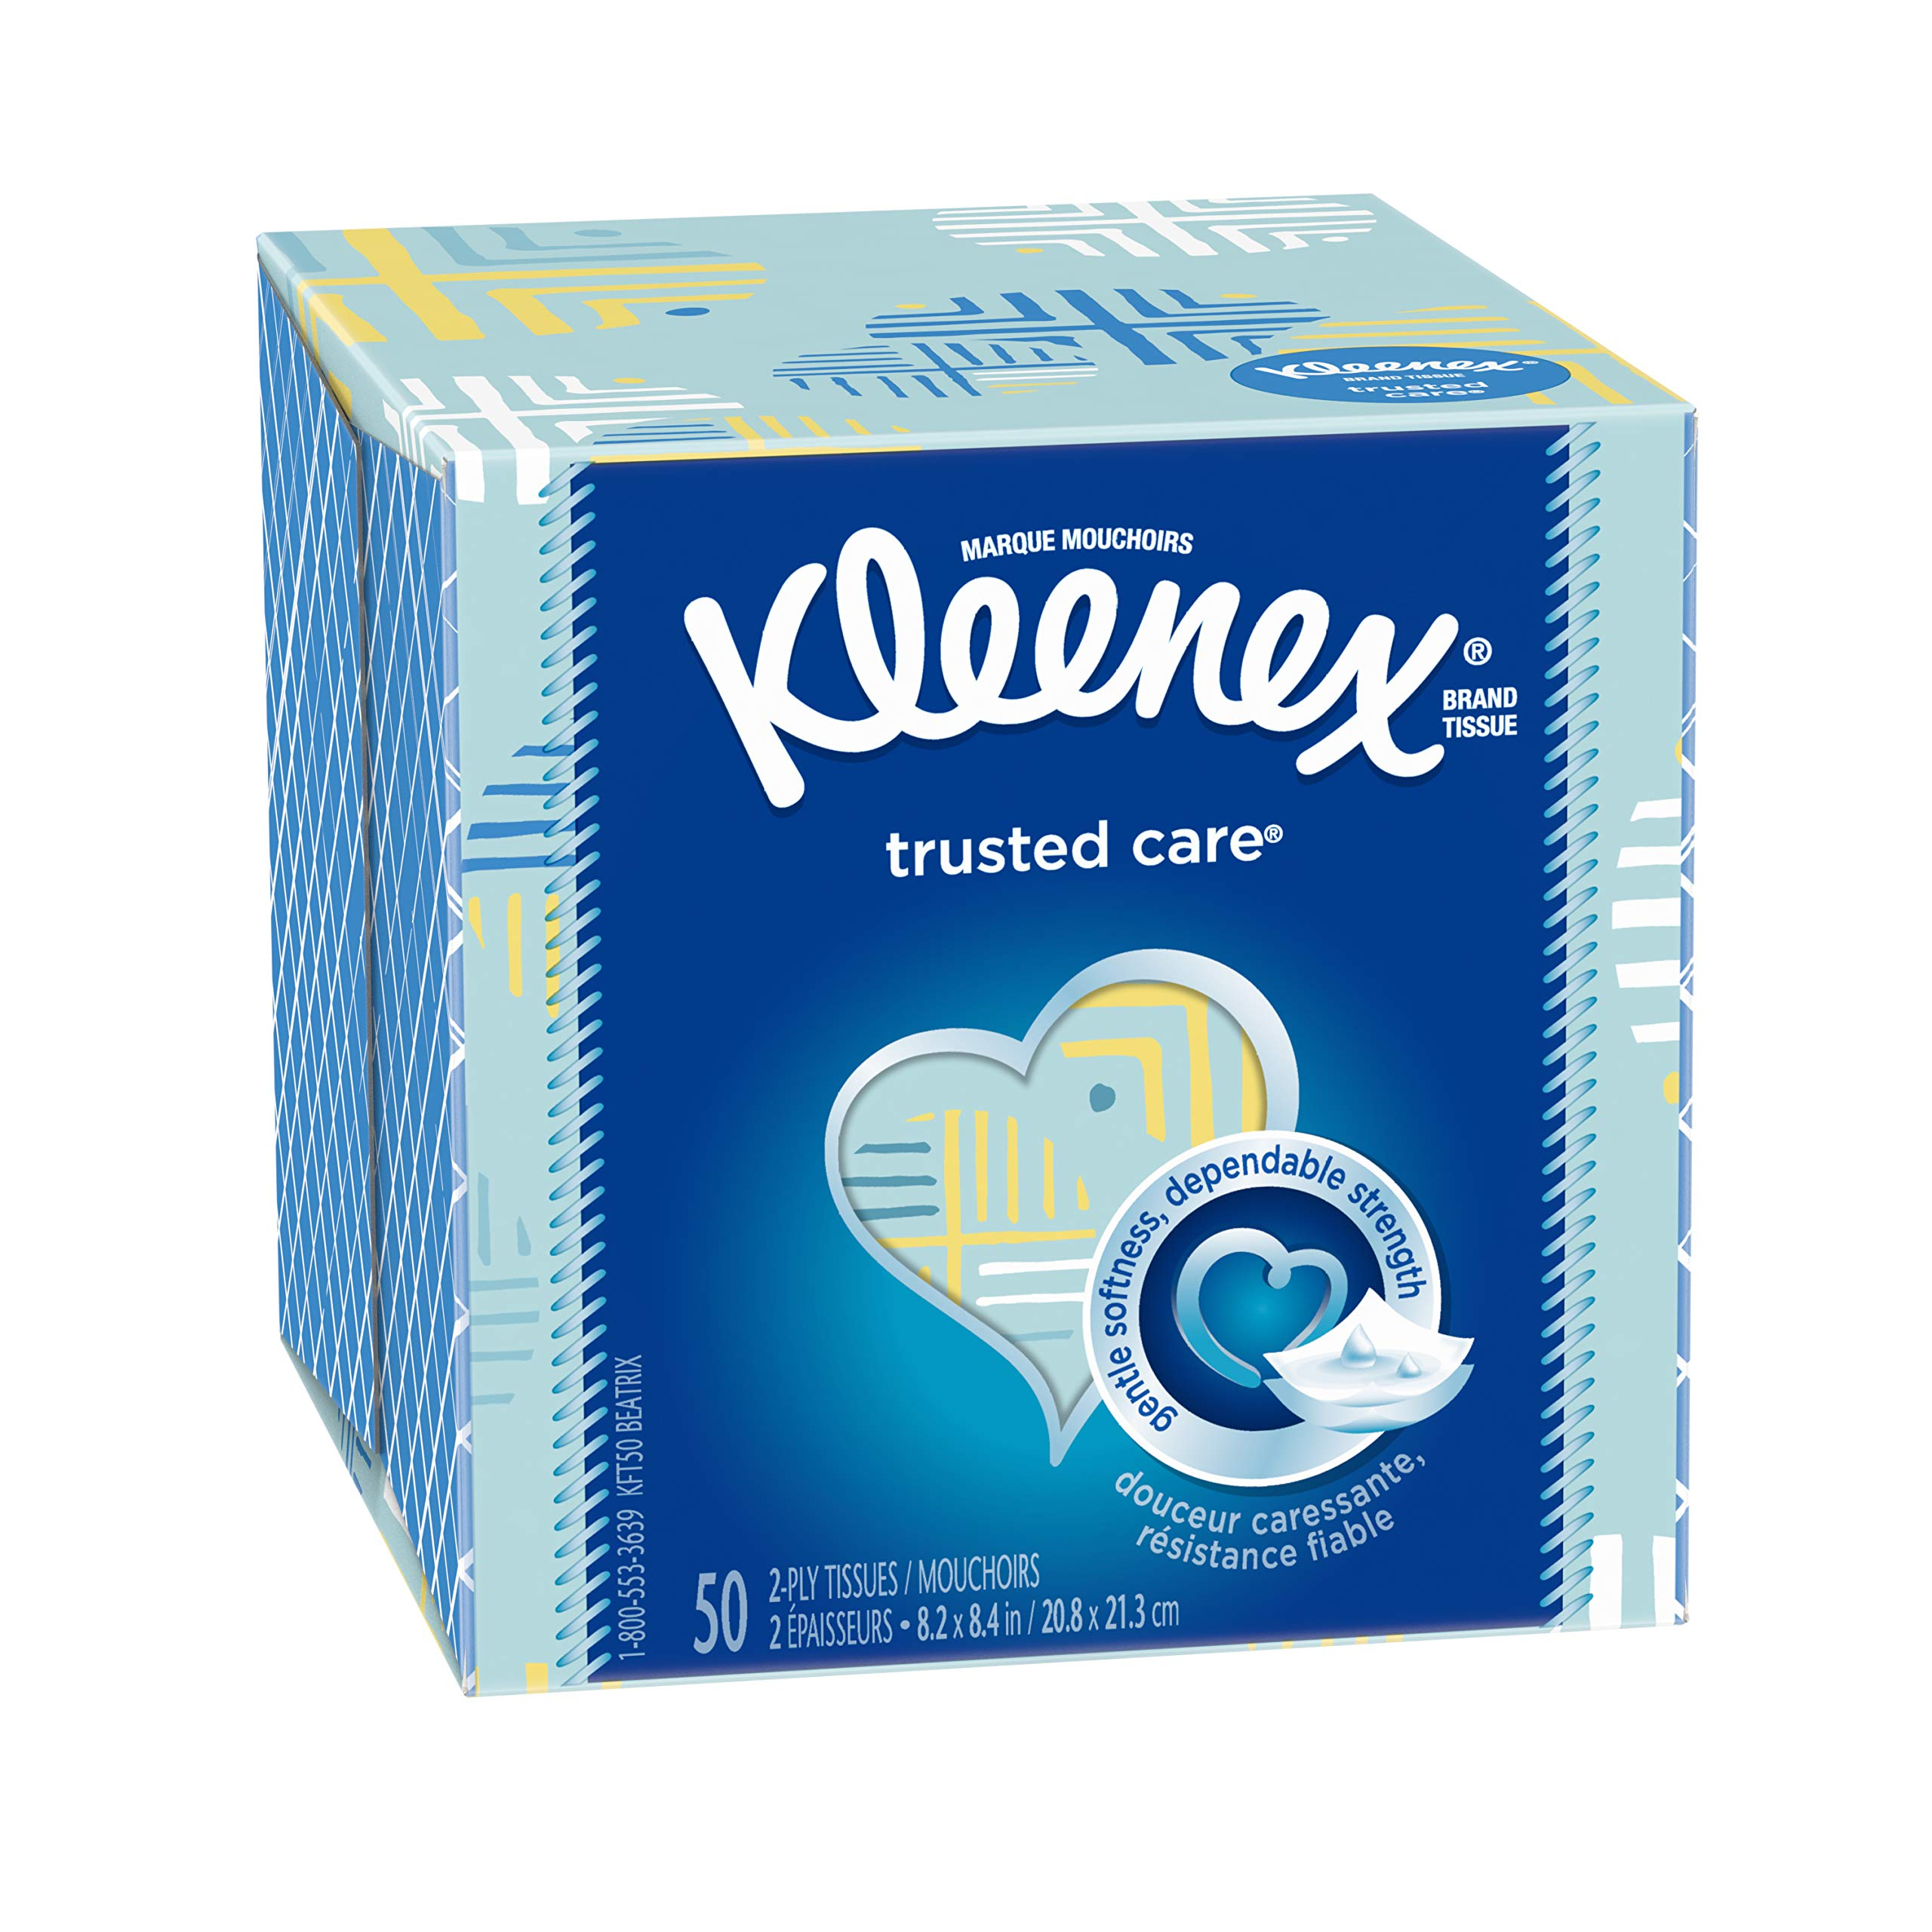 Kleenex Trusted Care Everyday Facial Tissues, Cube Box, 50 Tissues Per Box, 27 Count